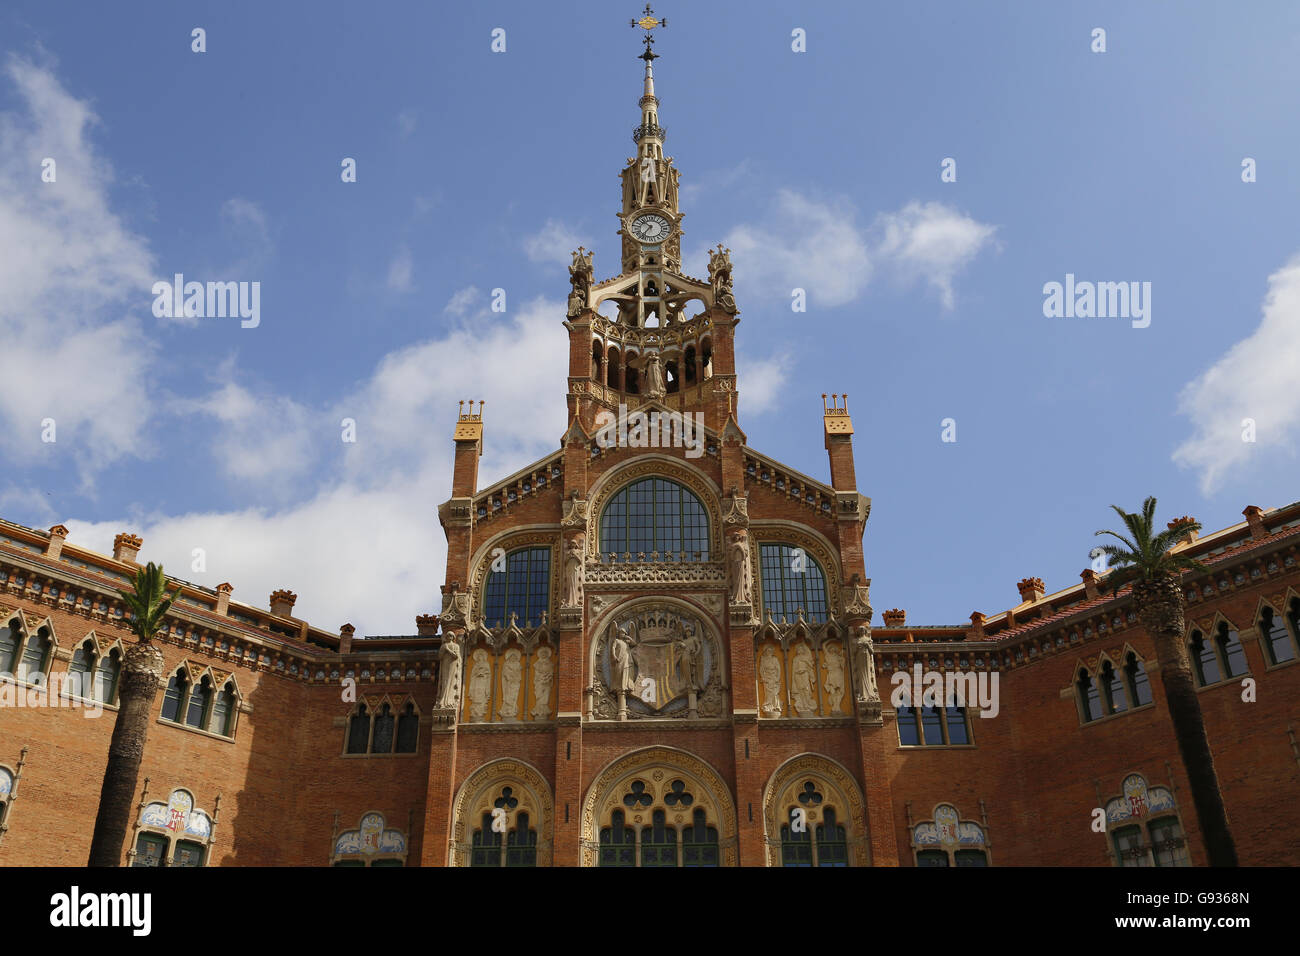 Hospital of the Holy Cross and Saint Paul. Built 1901-1930. Designed by modernist architect Lluis Domenech i Montaner - Stock Image